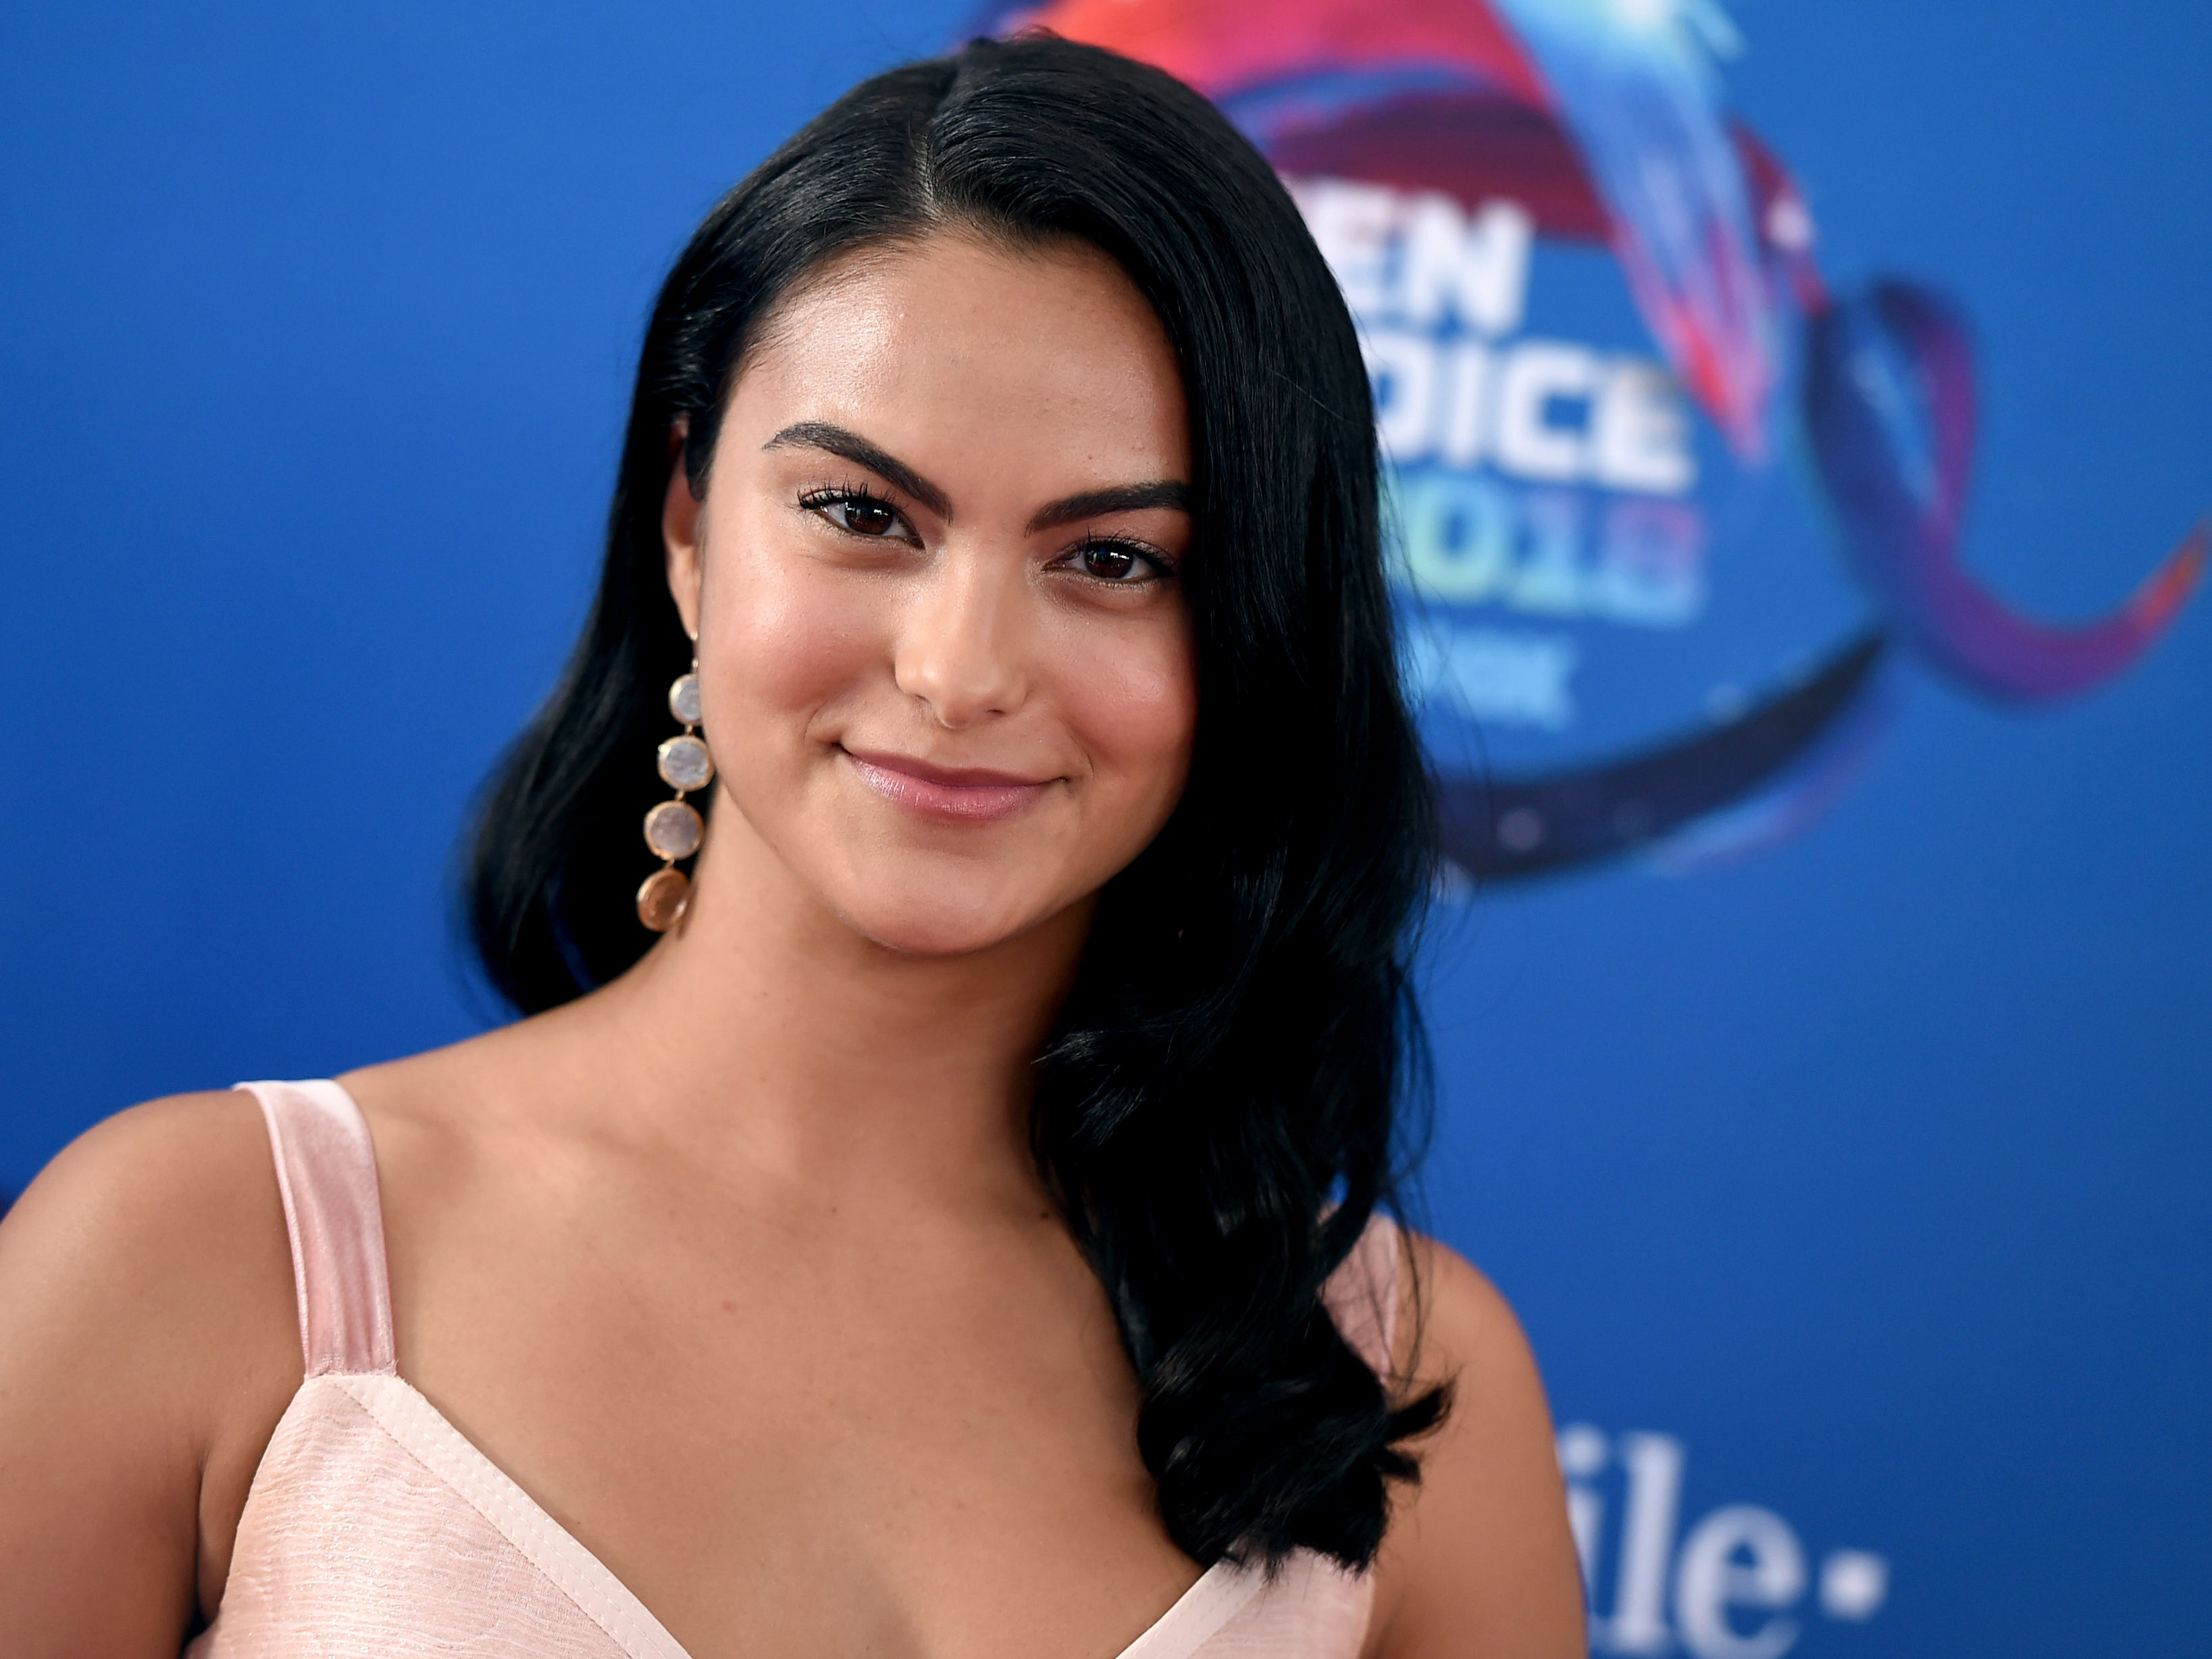 Camila Mendes arrives at the Teen Choice Awards at The Forum on Sunday, Aug. 12, 2018, in Inglewood, Calif. (Photo by Jordan Strauss/Invision/AP) ORG XMIT: CAPM162